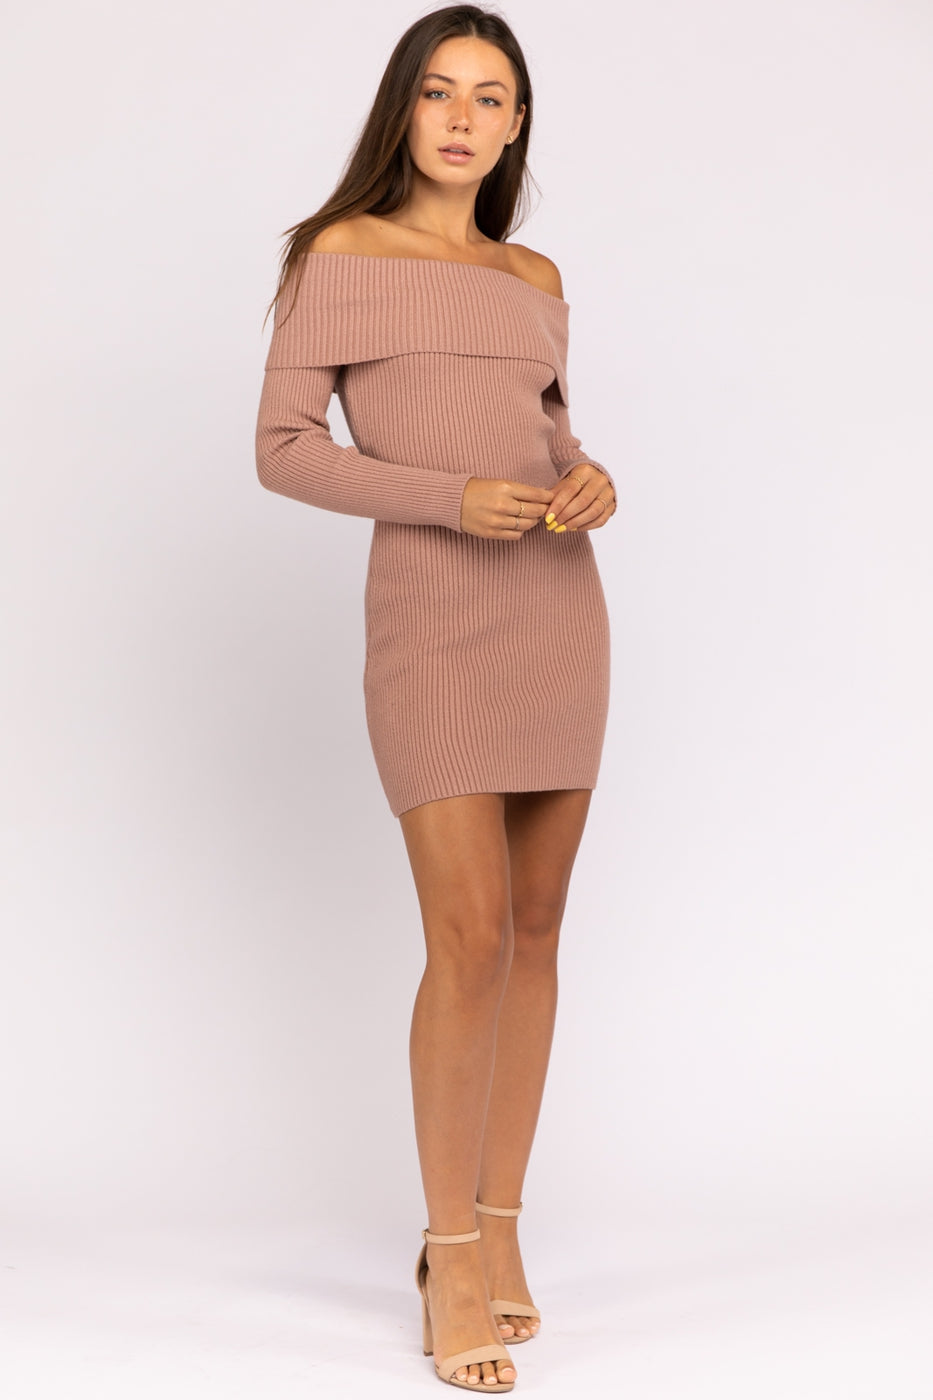 Off Shoulder Rib Knit Bodycon Dress In Lt-Blush Siin Bees